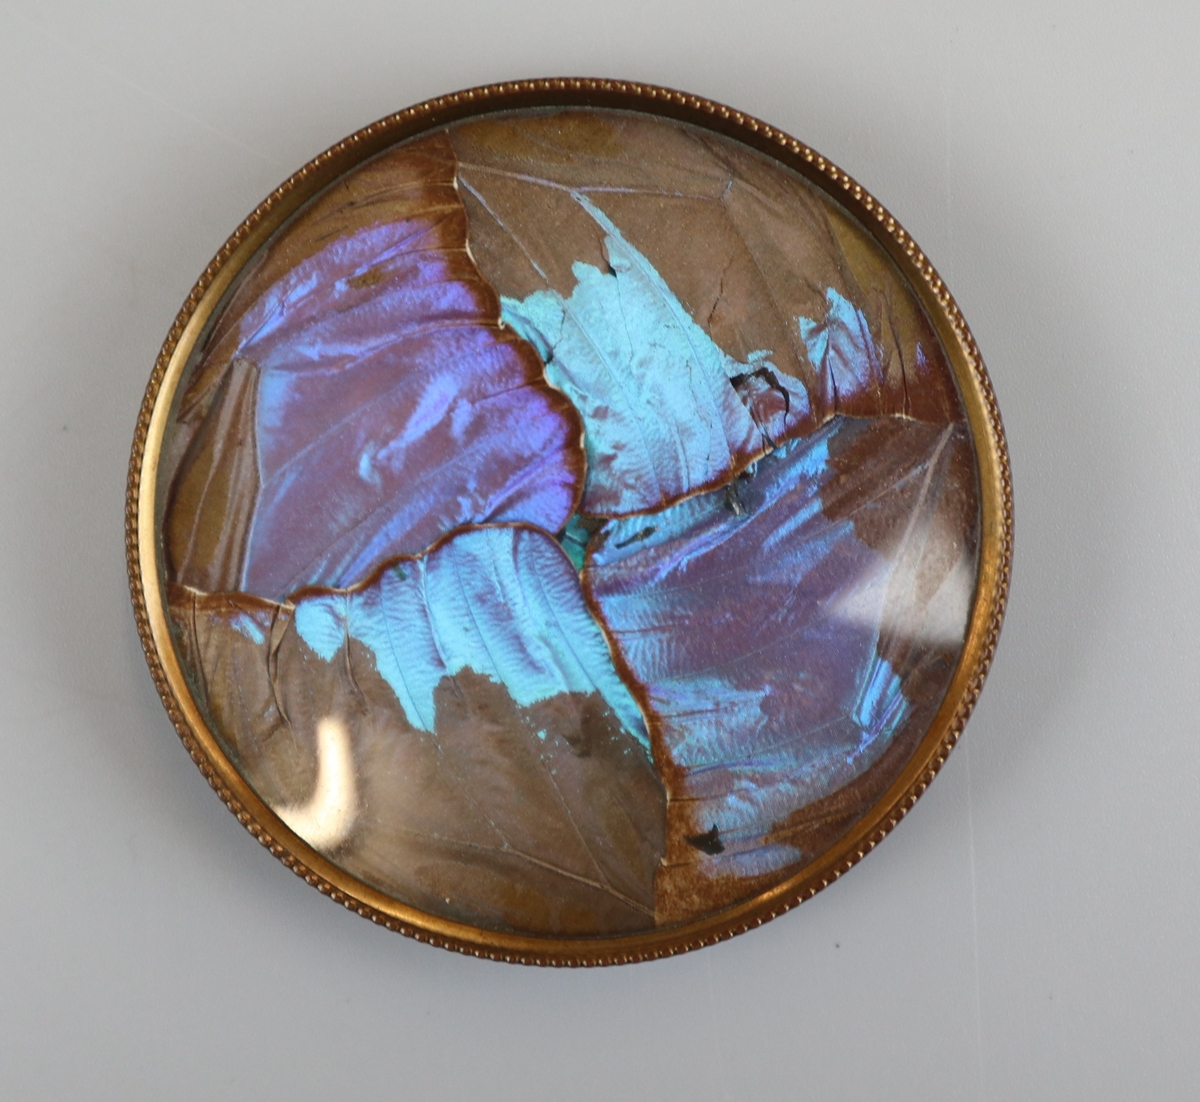 Thomas L Mott - Butterfly wing pin dishes circa 1875 - Image 3 of 5